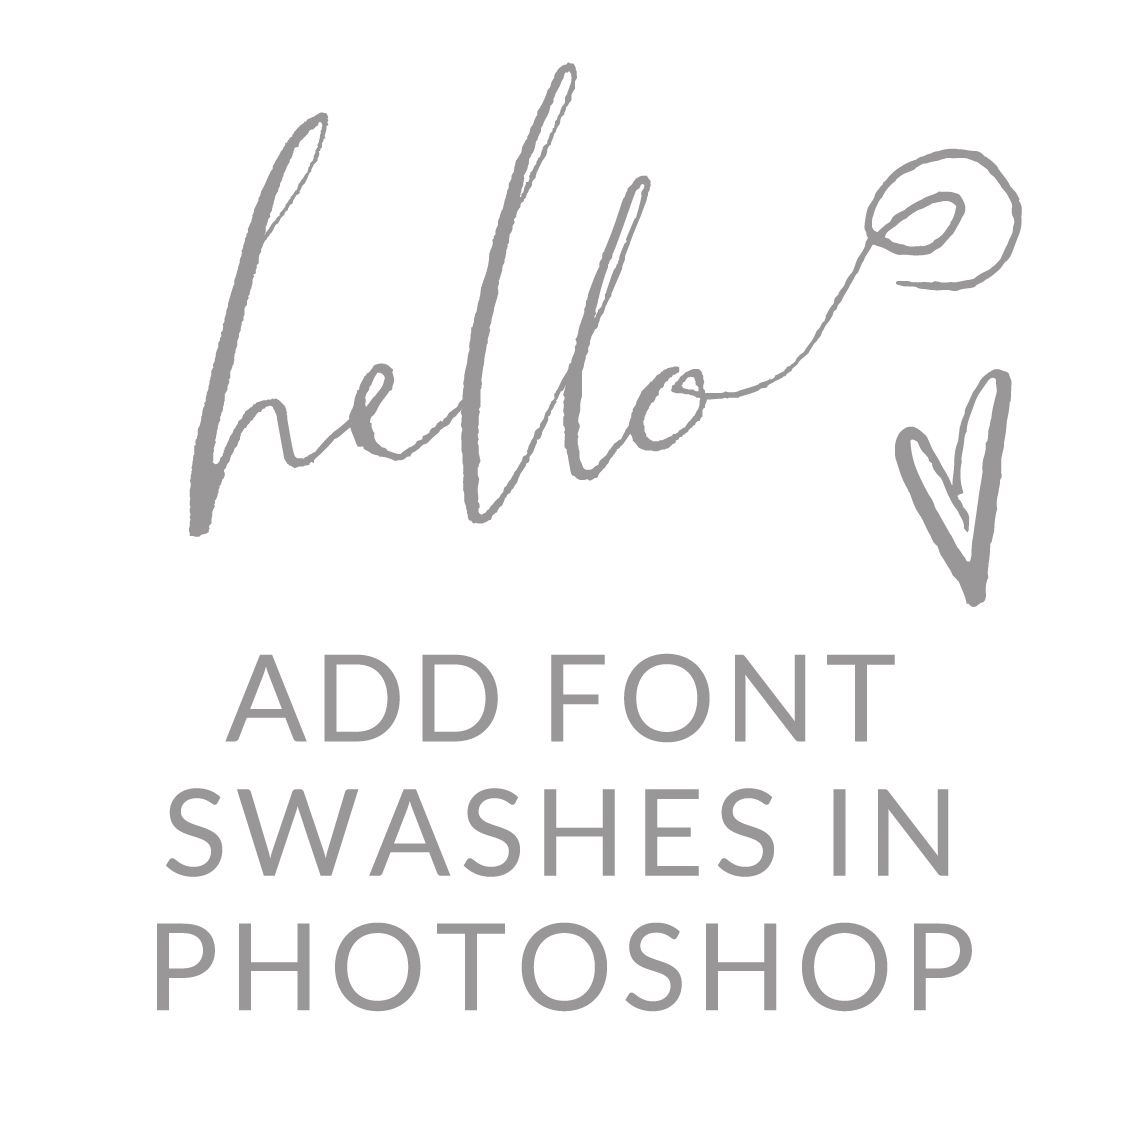 How to add swashes fonts in photoshop